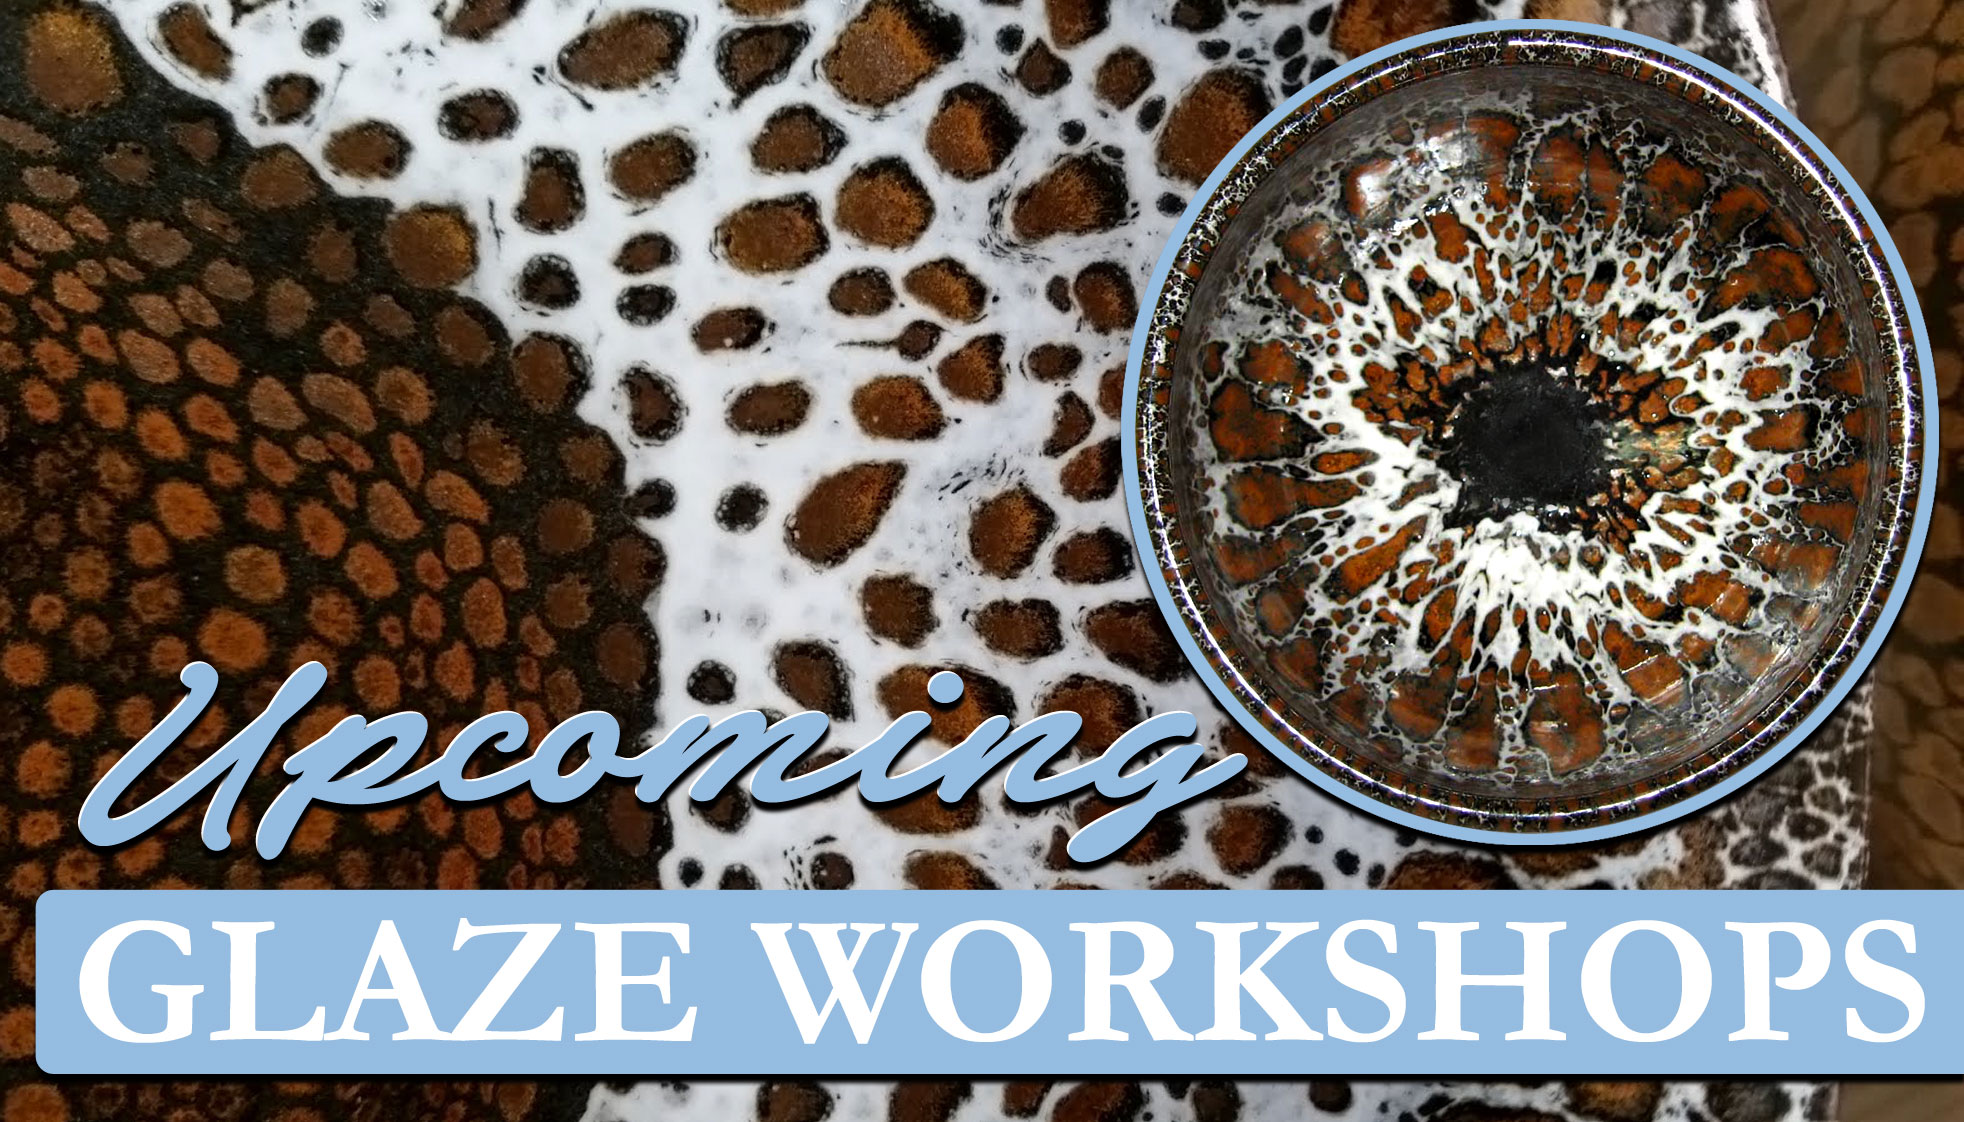 Glaze workshops